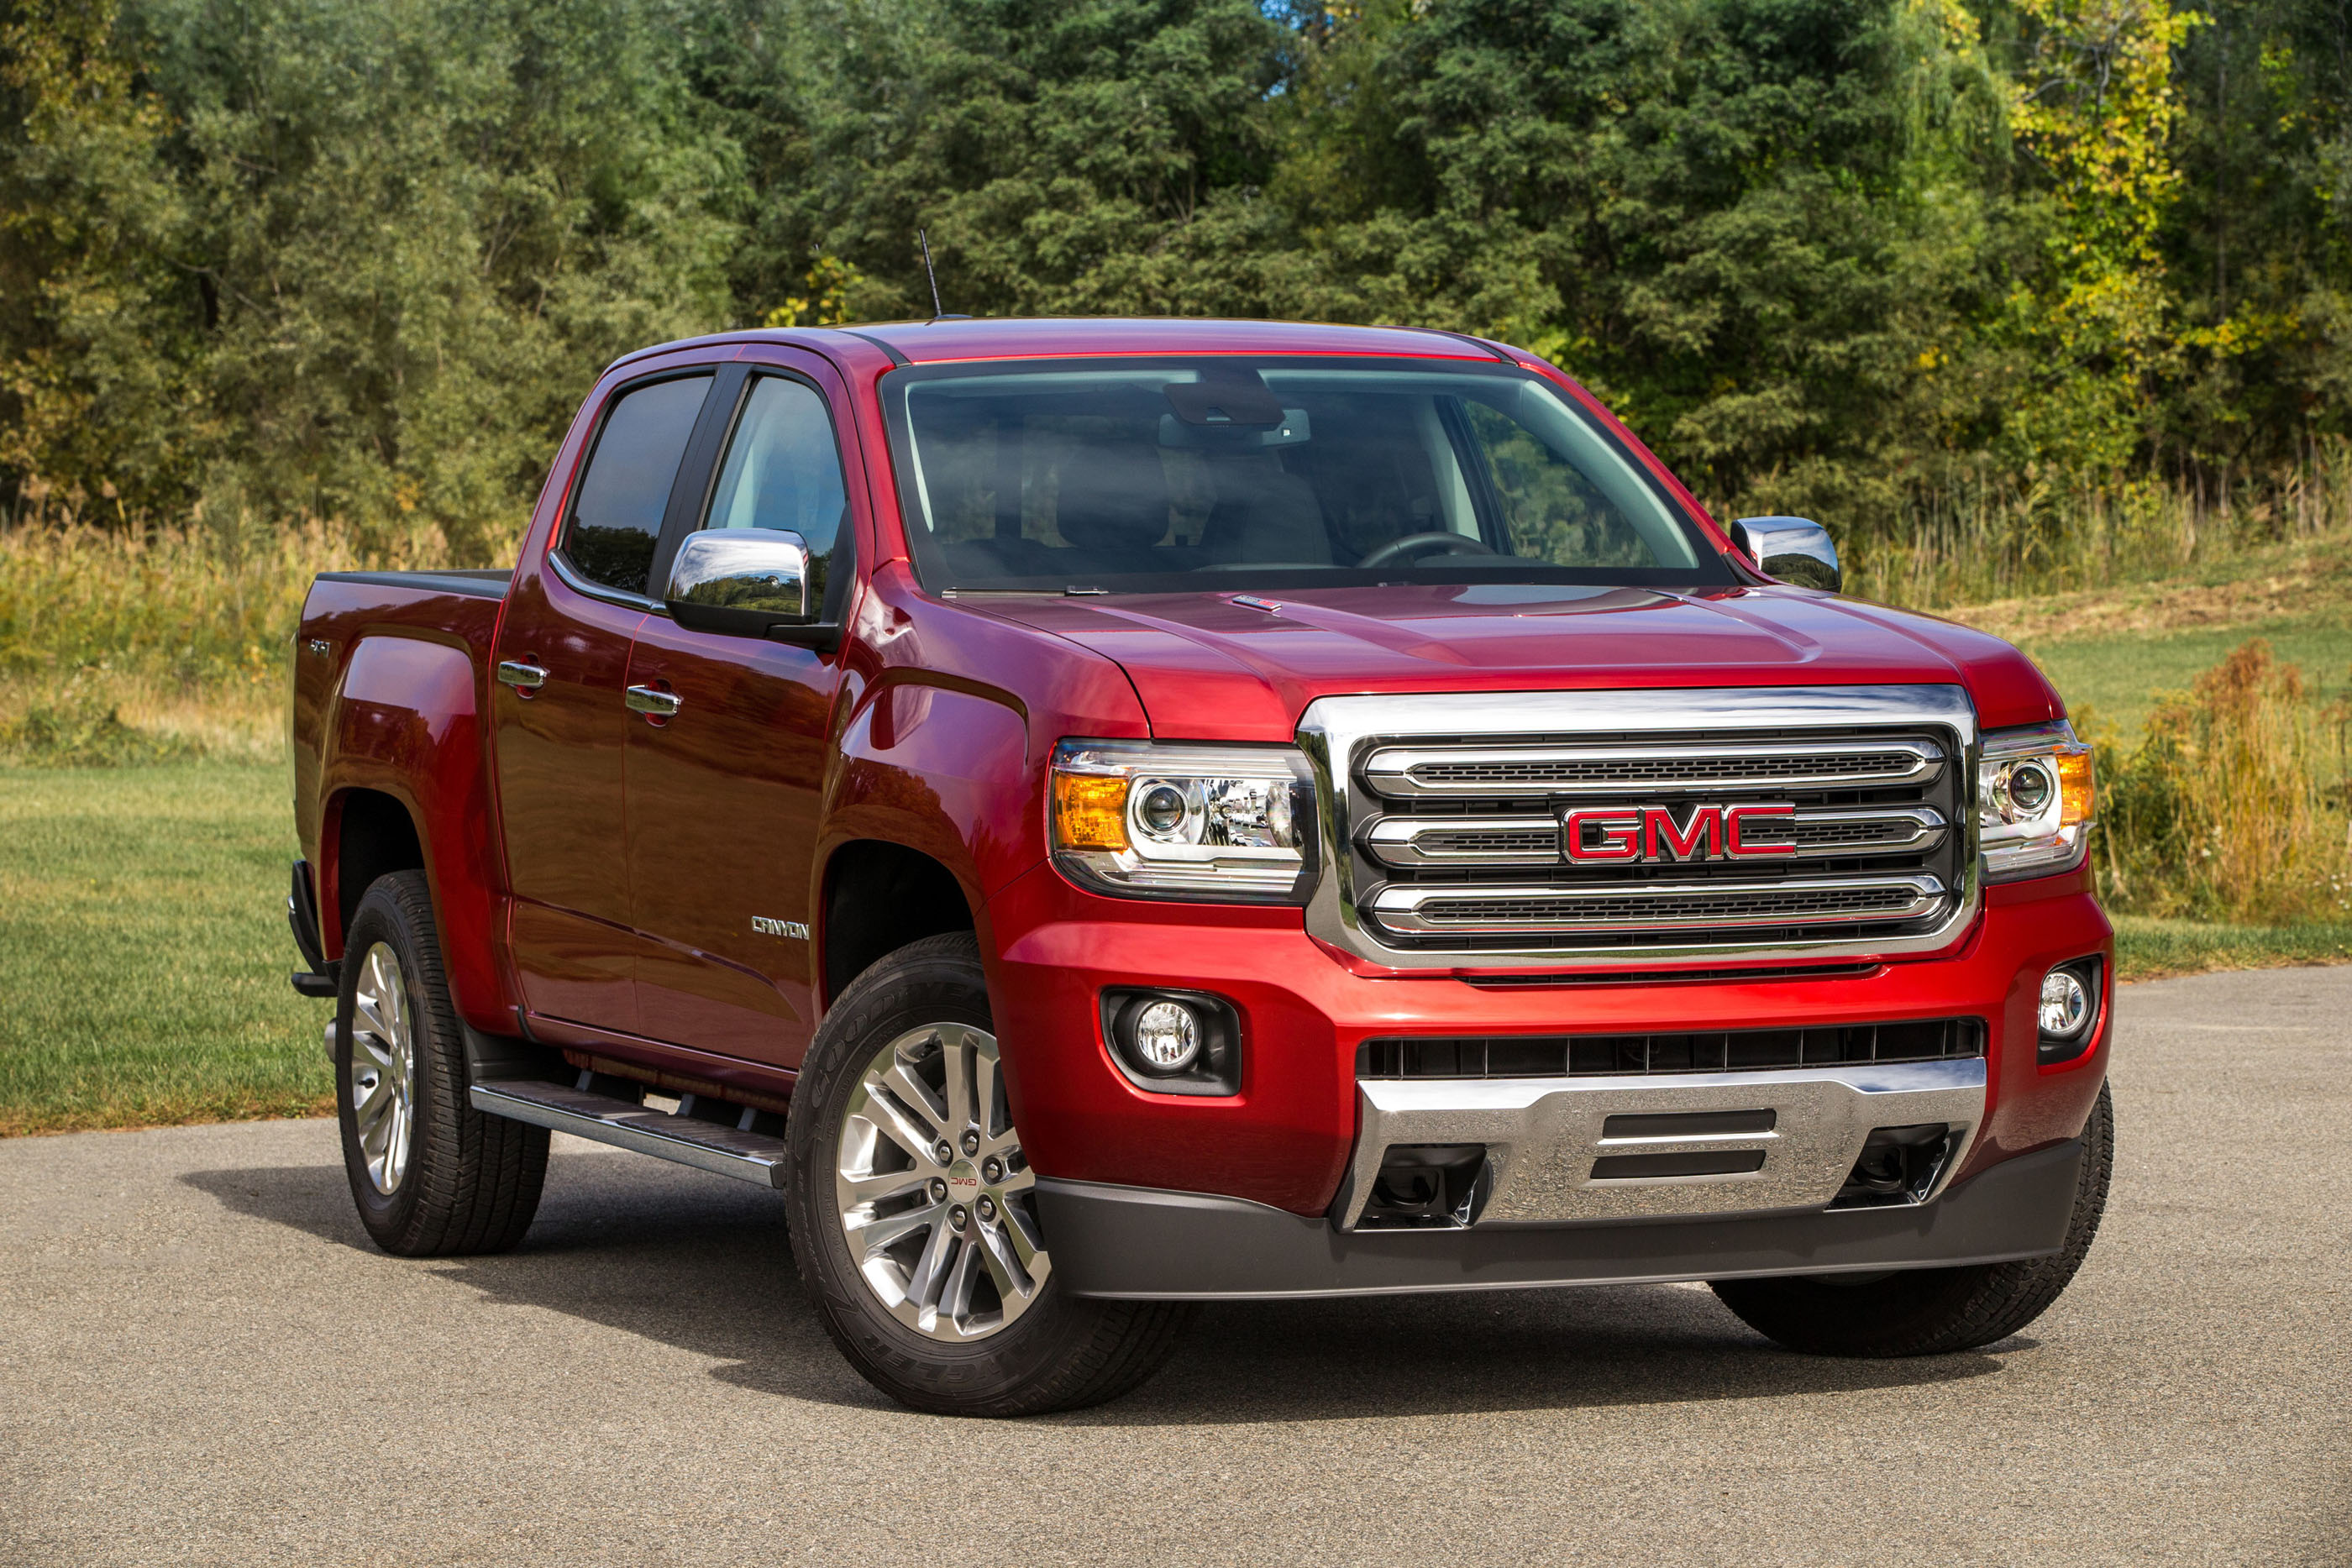 2017 GMC Canyon Safety Review and Crash Test Ratings - The ...